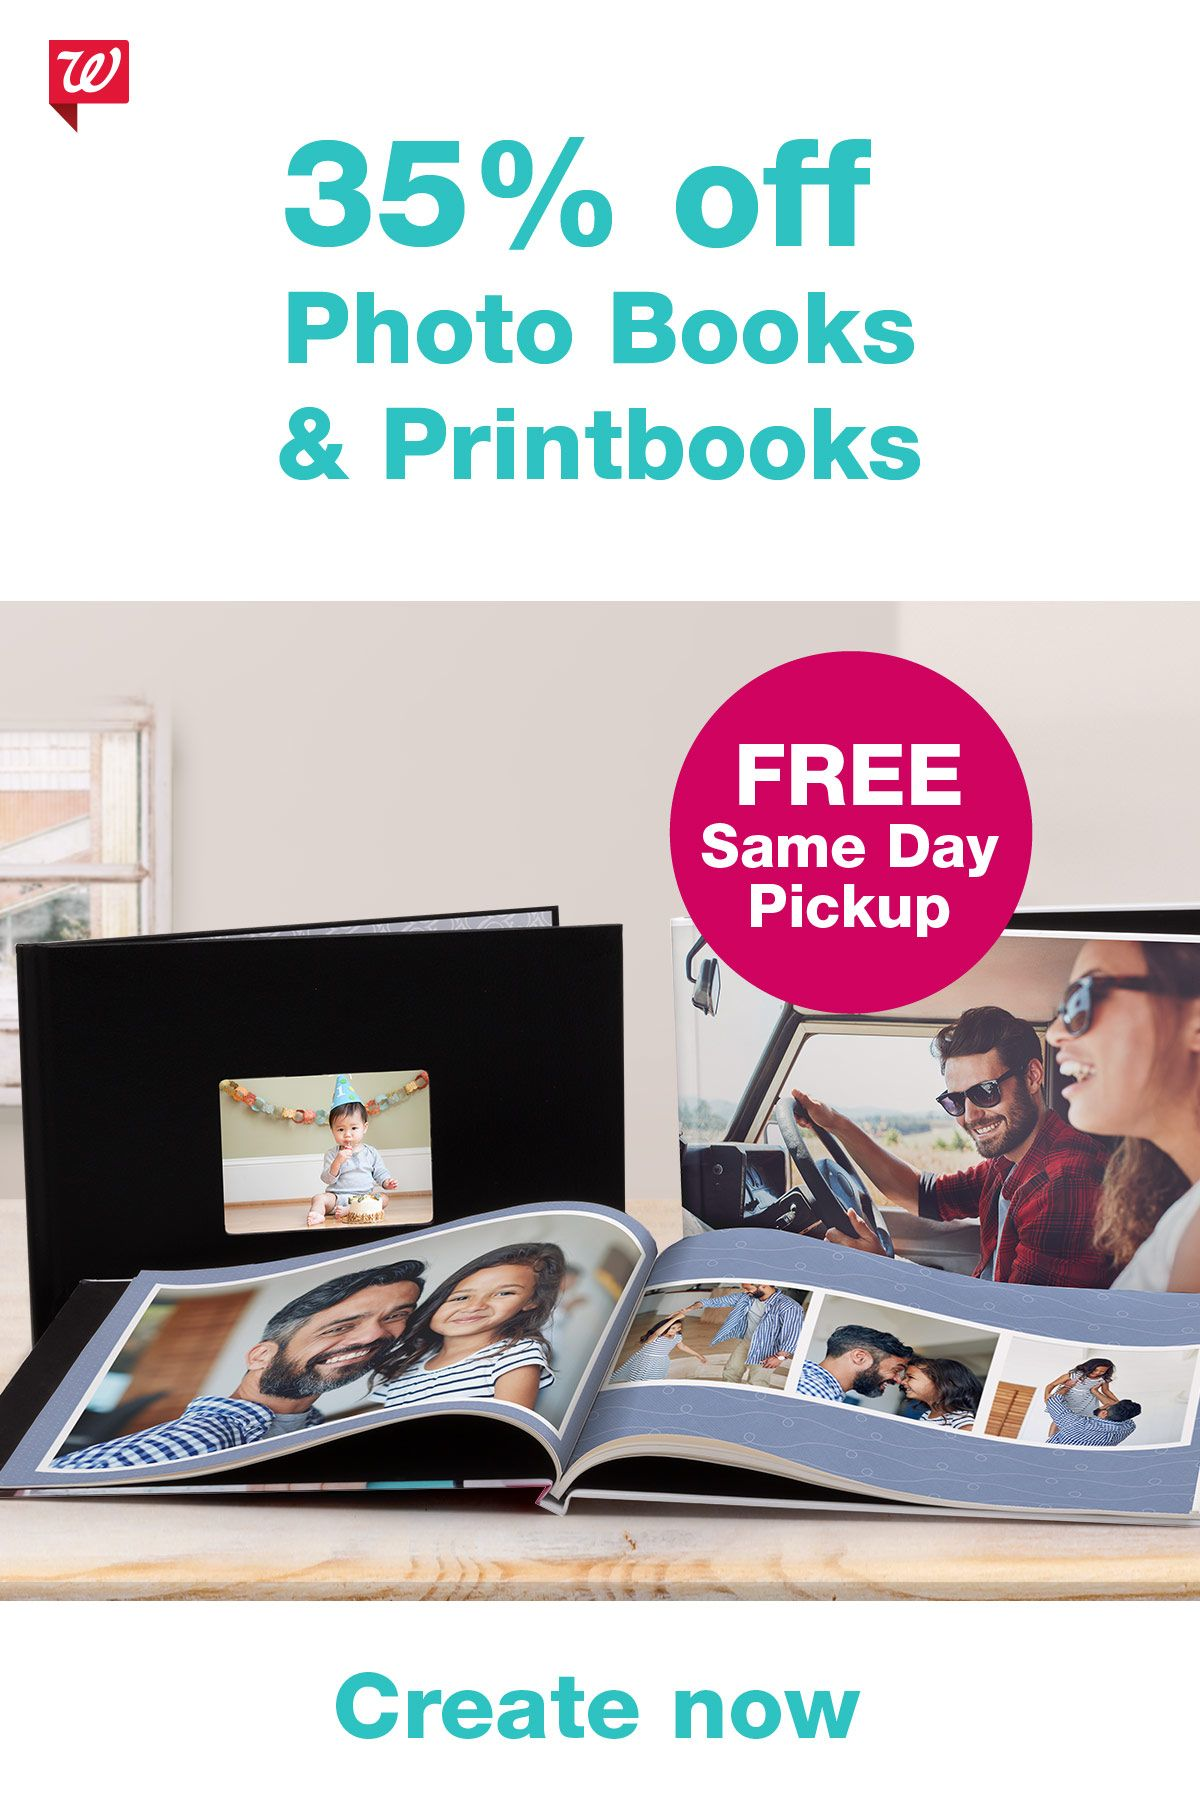 Get 35 Off Photo Books With Code Allbooks35 Thru 7 27 Valid Online And Mobile App Restrictions Ap Photo Book Custom Photo Books Debt Consolidation Companies